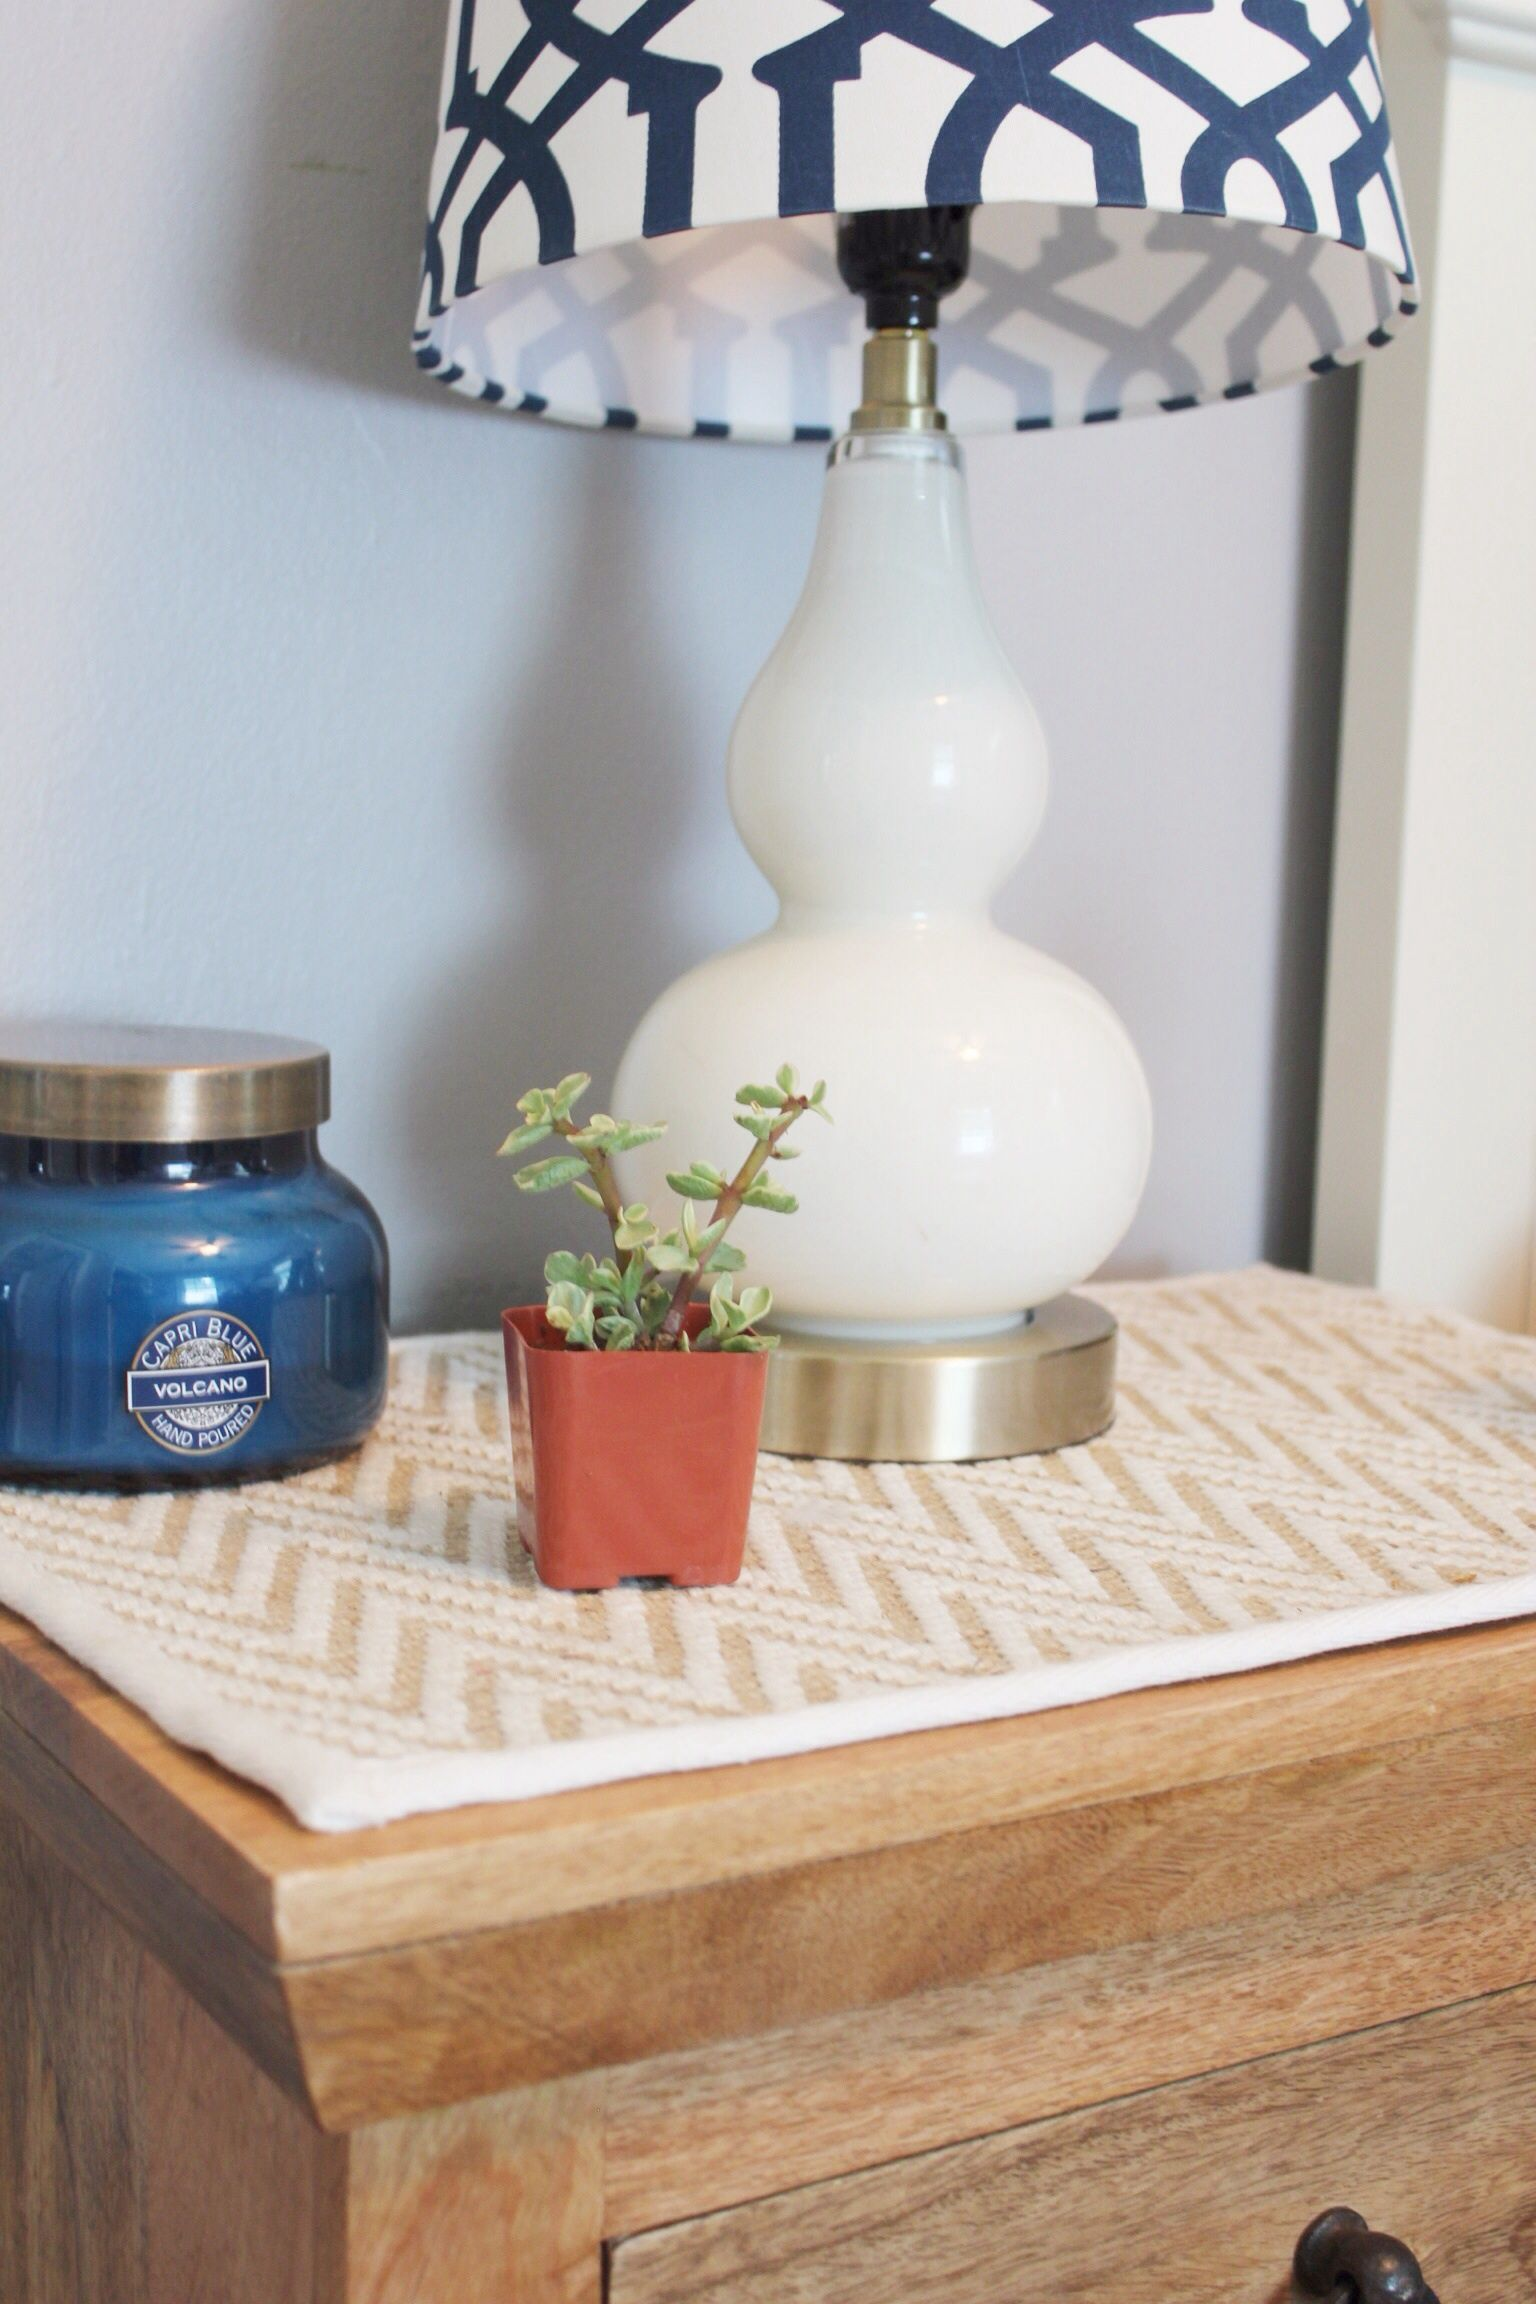 Use A Placemat To Protect Your Nightstand And End Tables